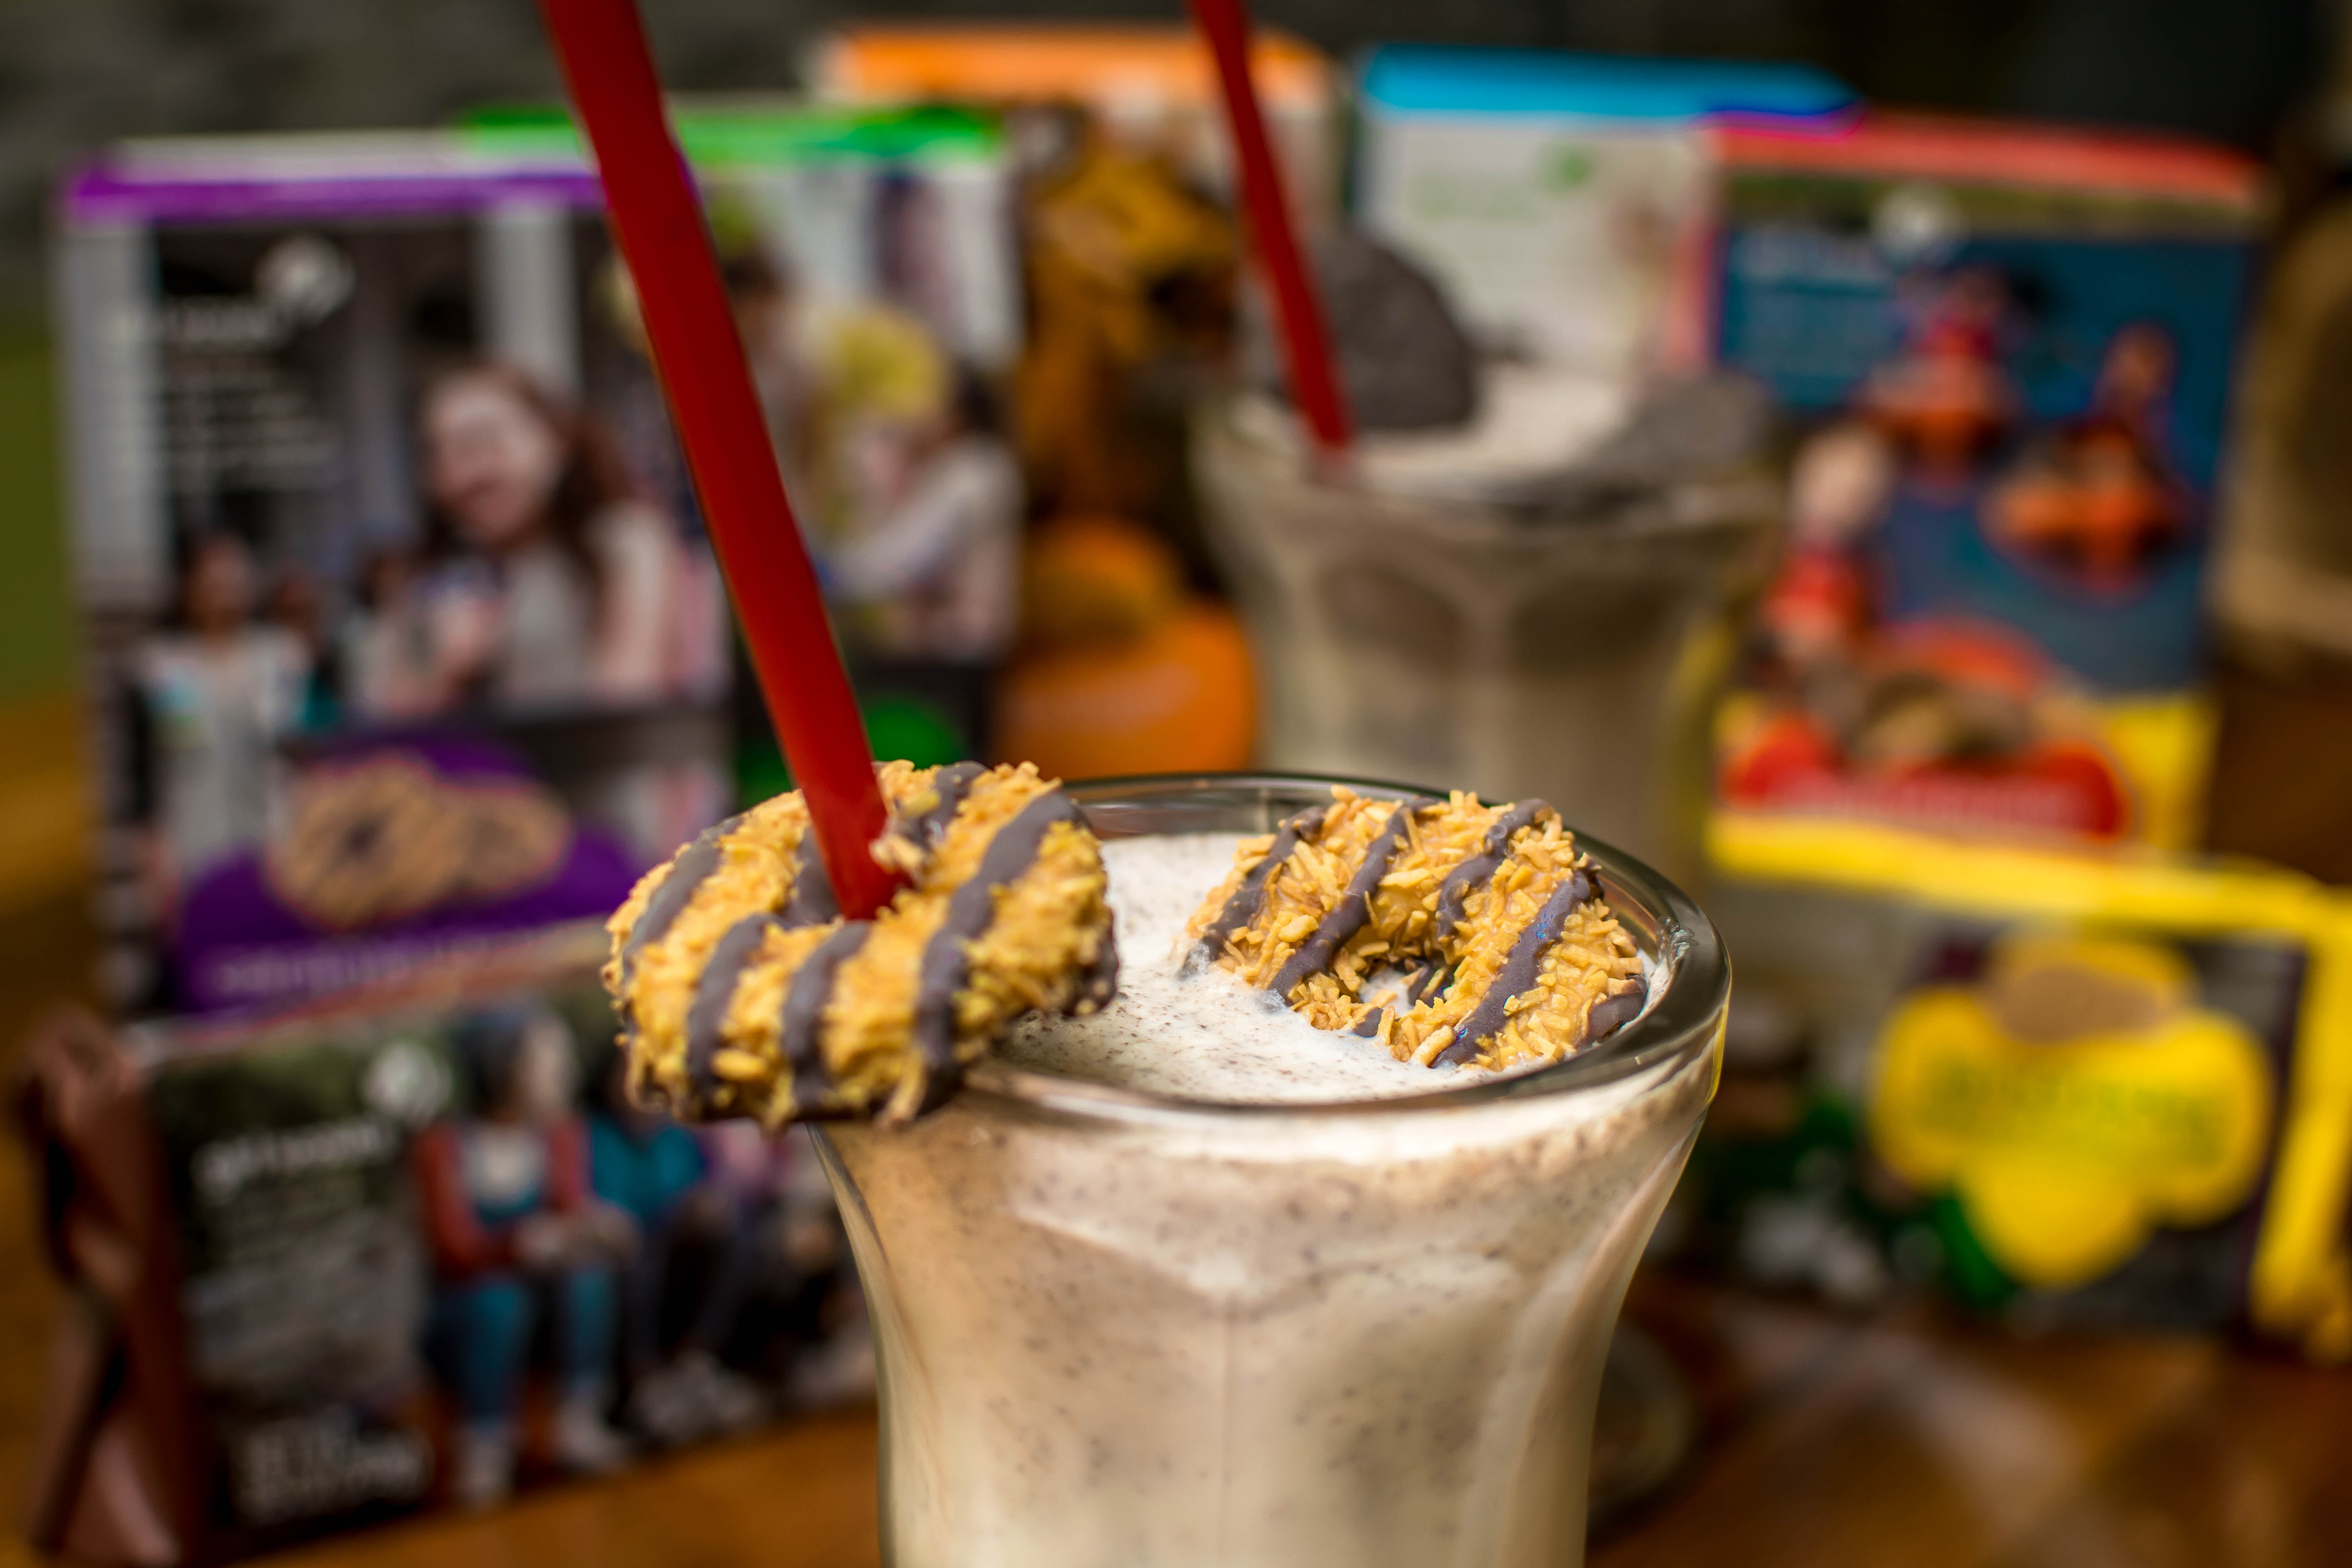 Girl Scout Cookie Milkshakes Are Now Being Served on East Passyunk Avenue